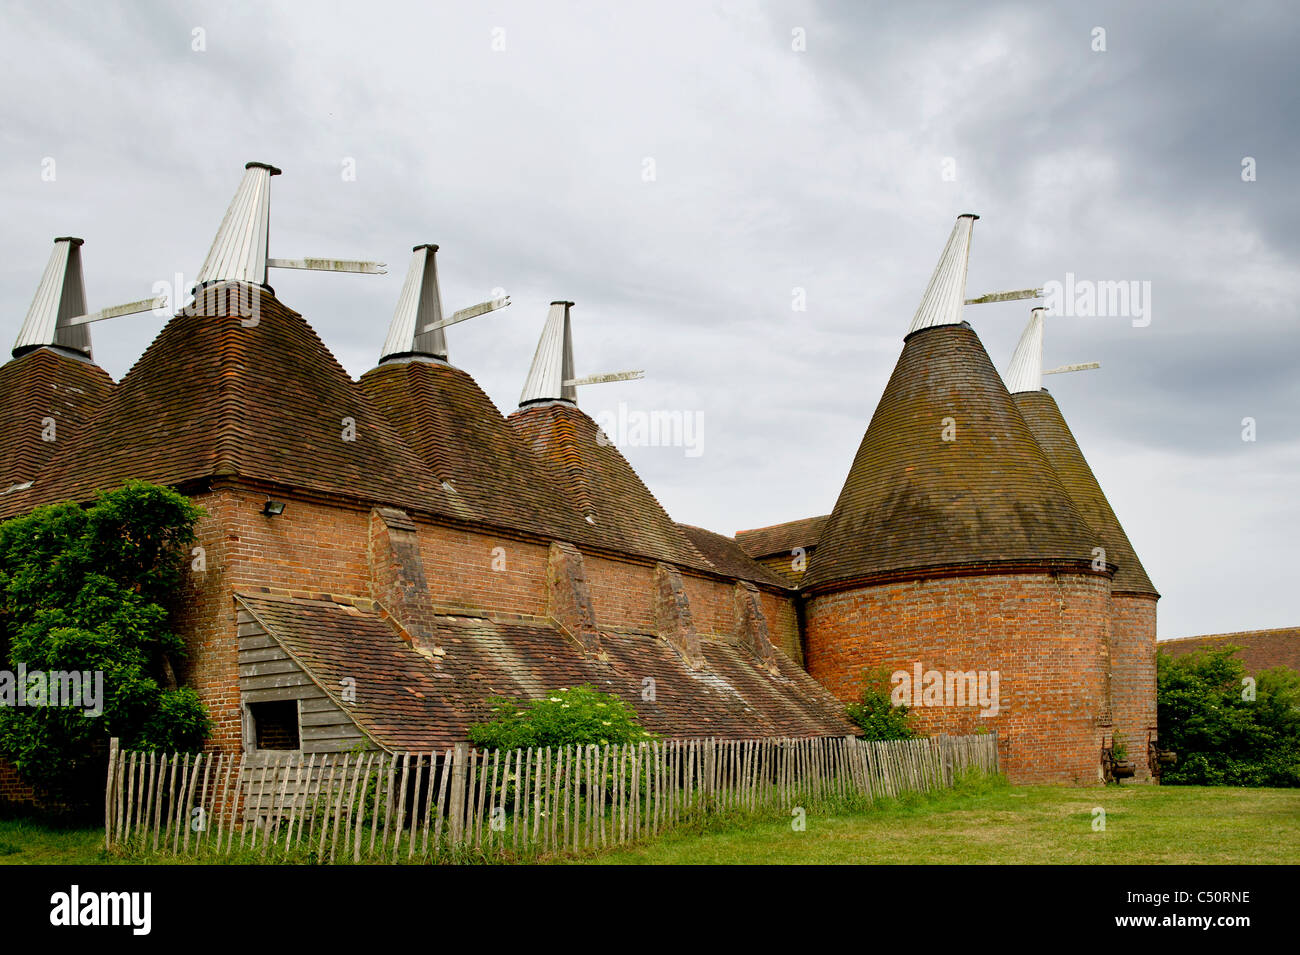 Oast houses for storing hops; Trockendarre für Hopfen - Stock Image